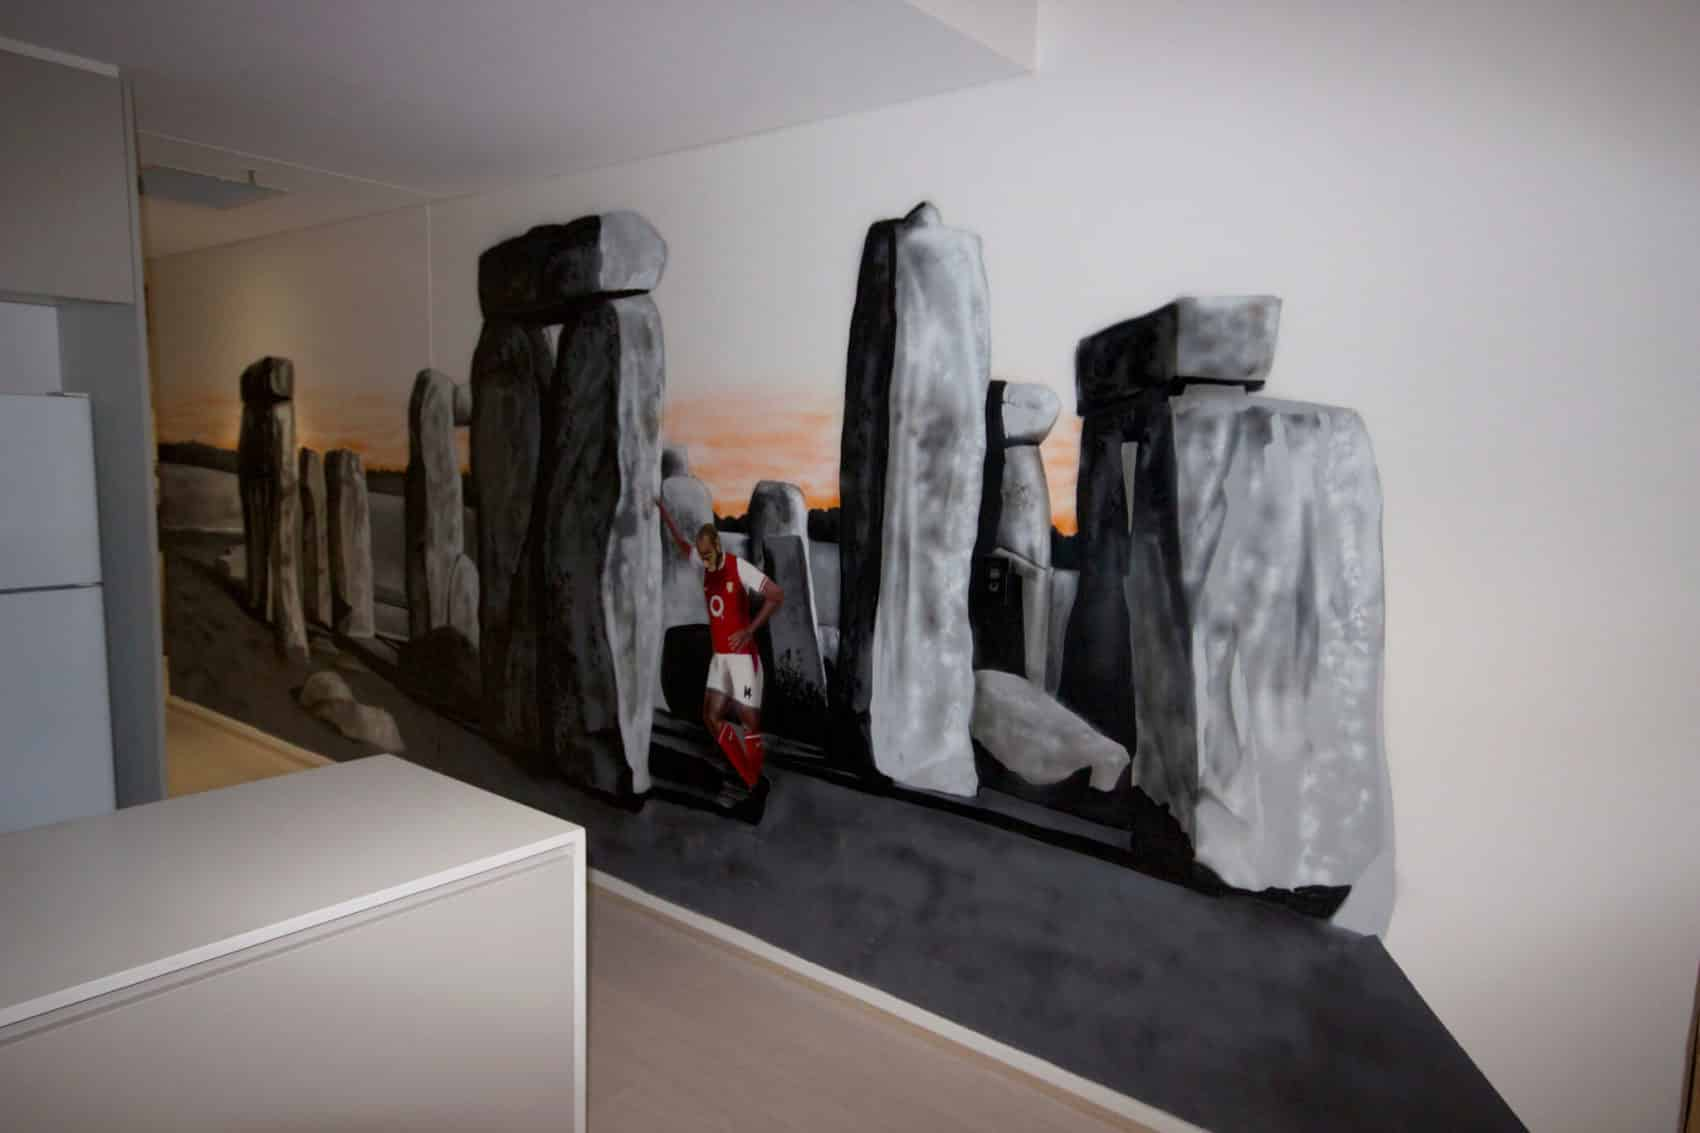 stone henge mural art wall painted in Mascot